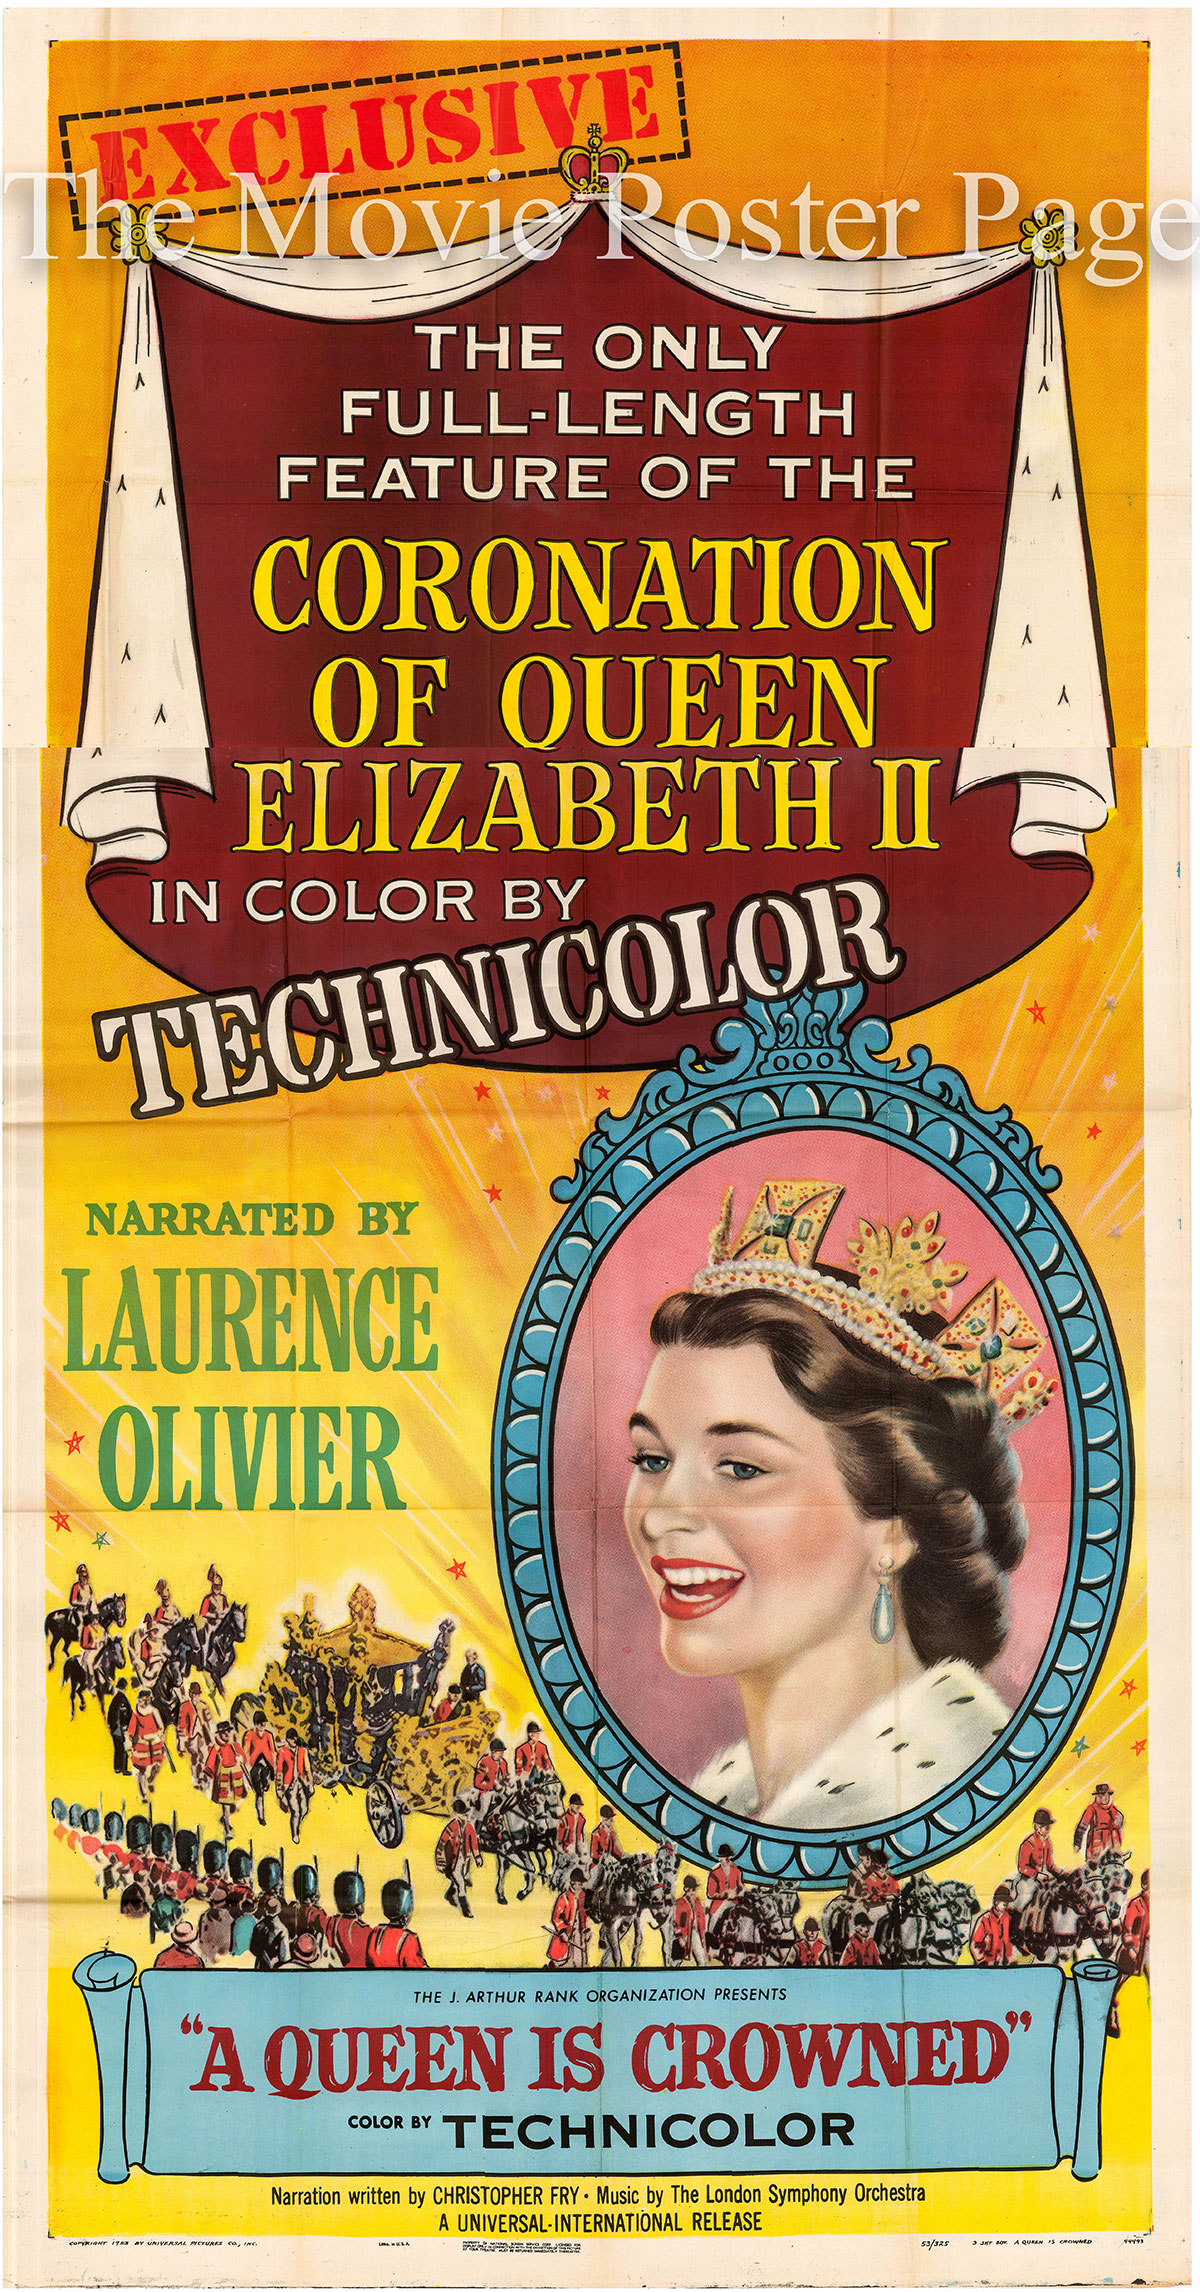 Pictured is a US three-sheet promotional poster for the 1953 film A Queen Is Crowned narrated by Laurence Olivier.